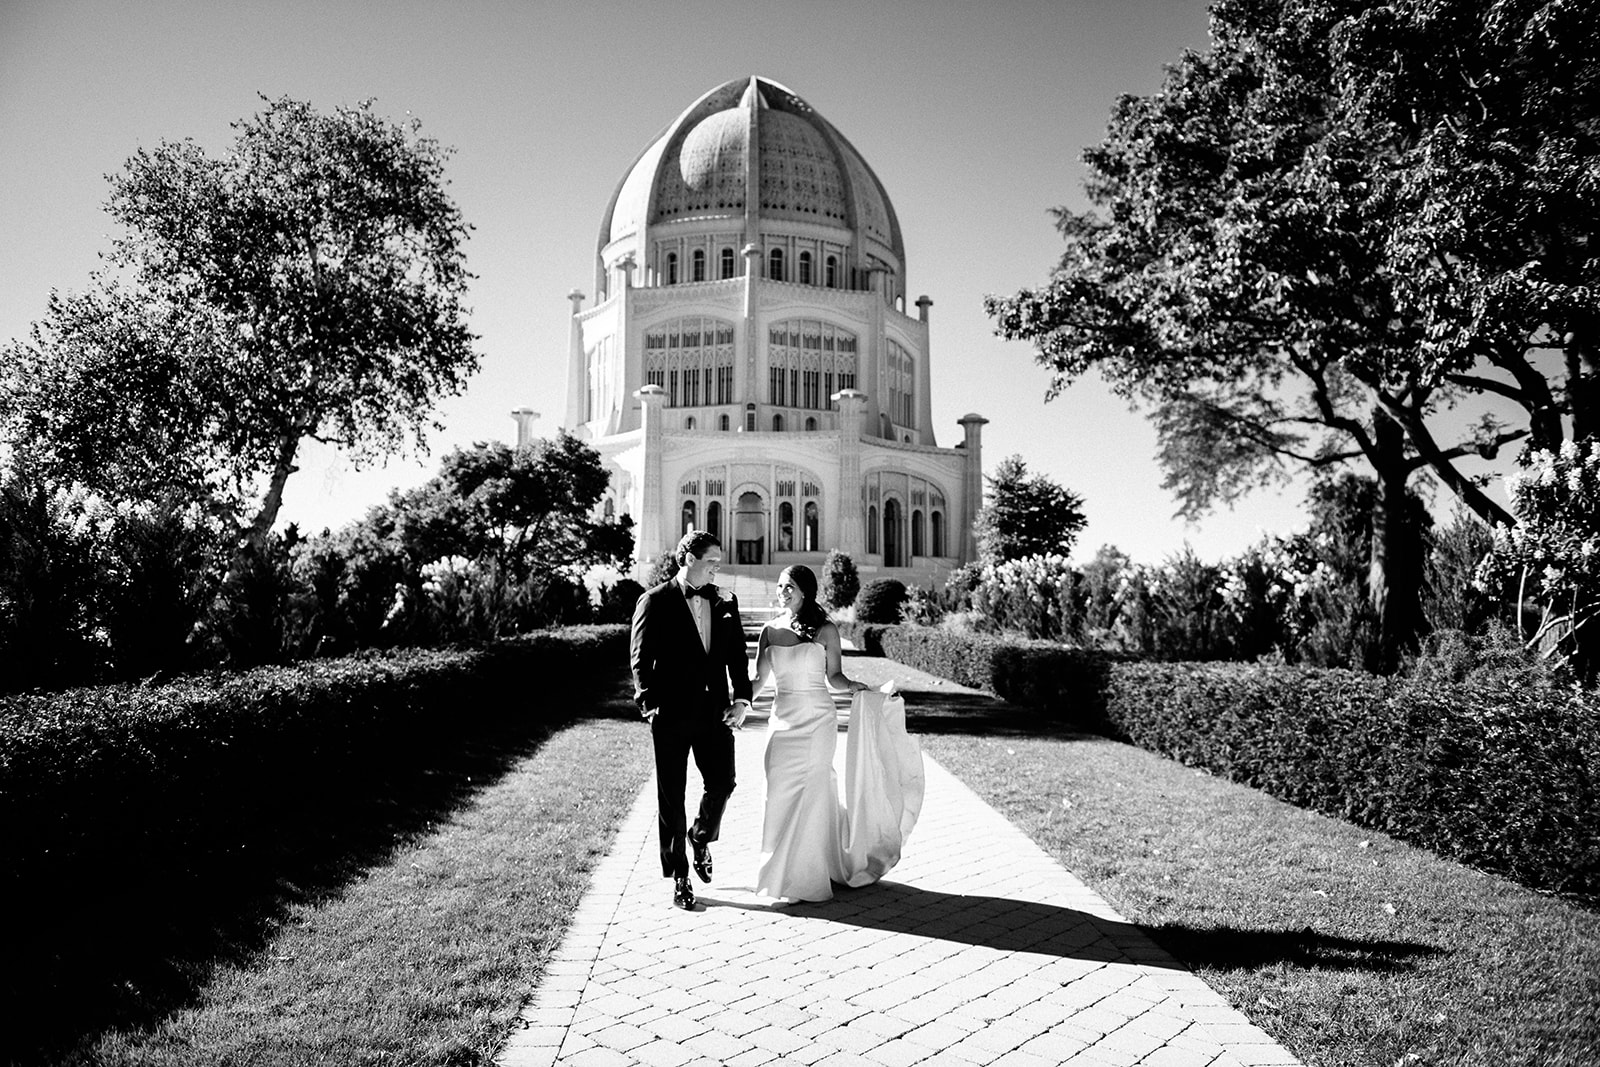 The Bahá'í House of Worship is a stunning backdrop. The fountains and gardens on site are beautiful. We love photographing wedding parties at this great photo location on Chicago's North Side! It's also near the Chicago Botanic Gardens.